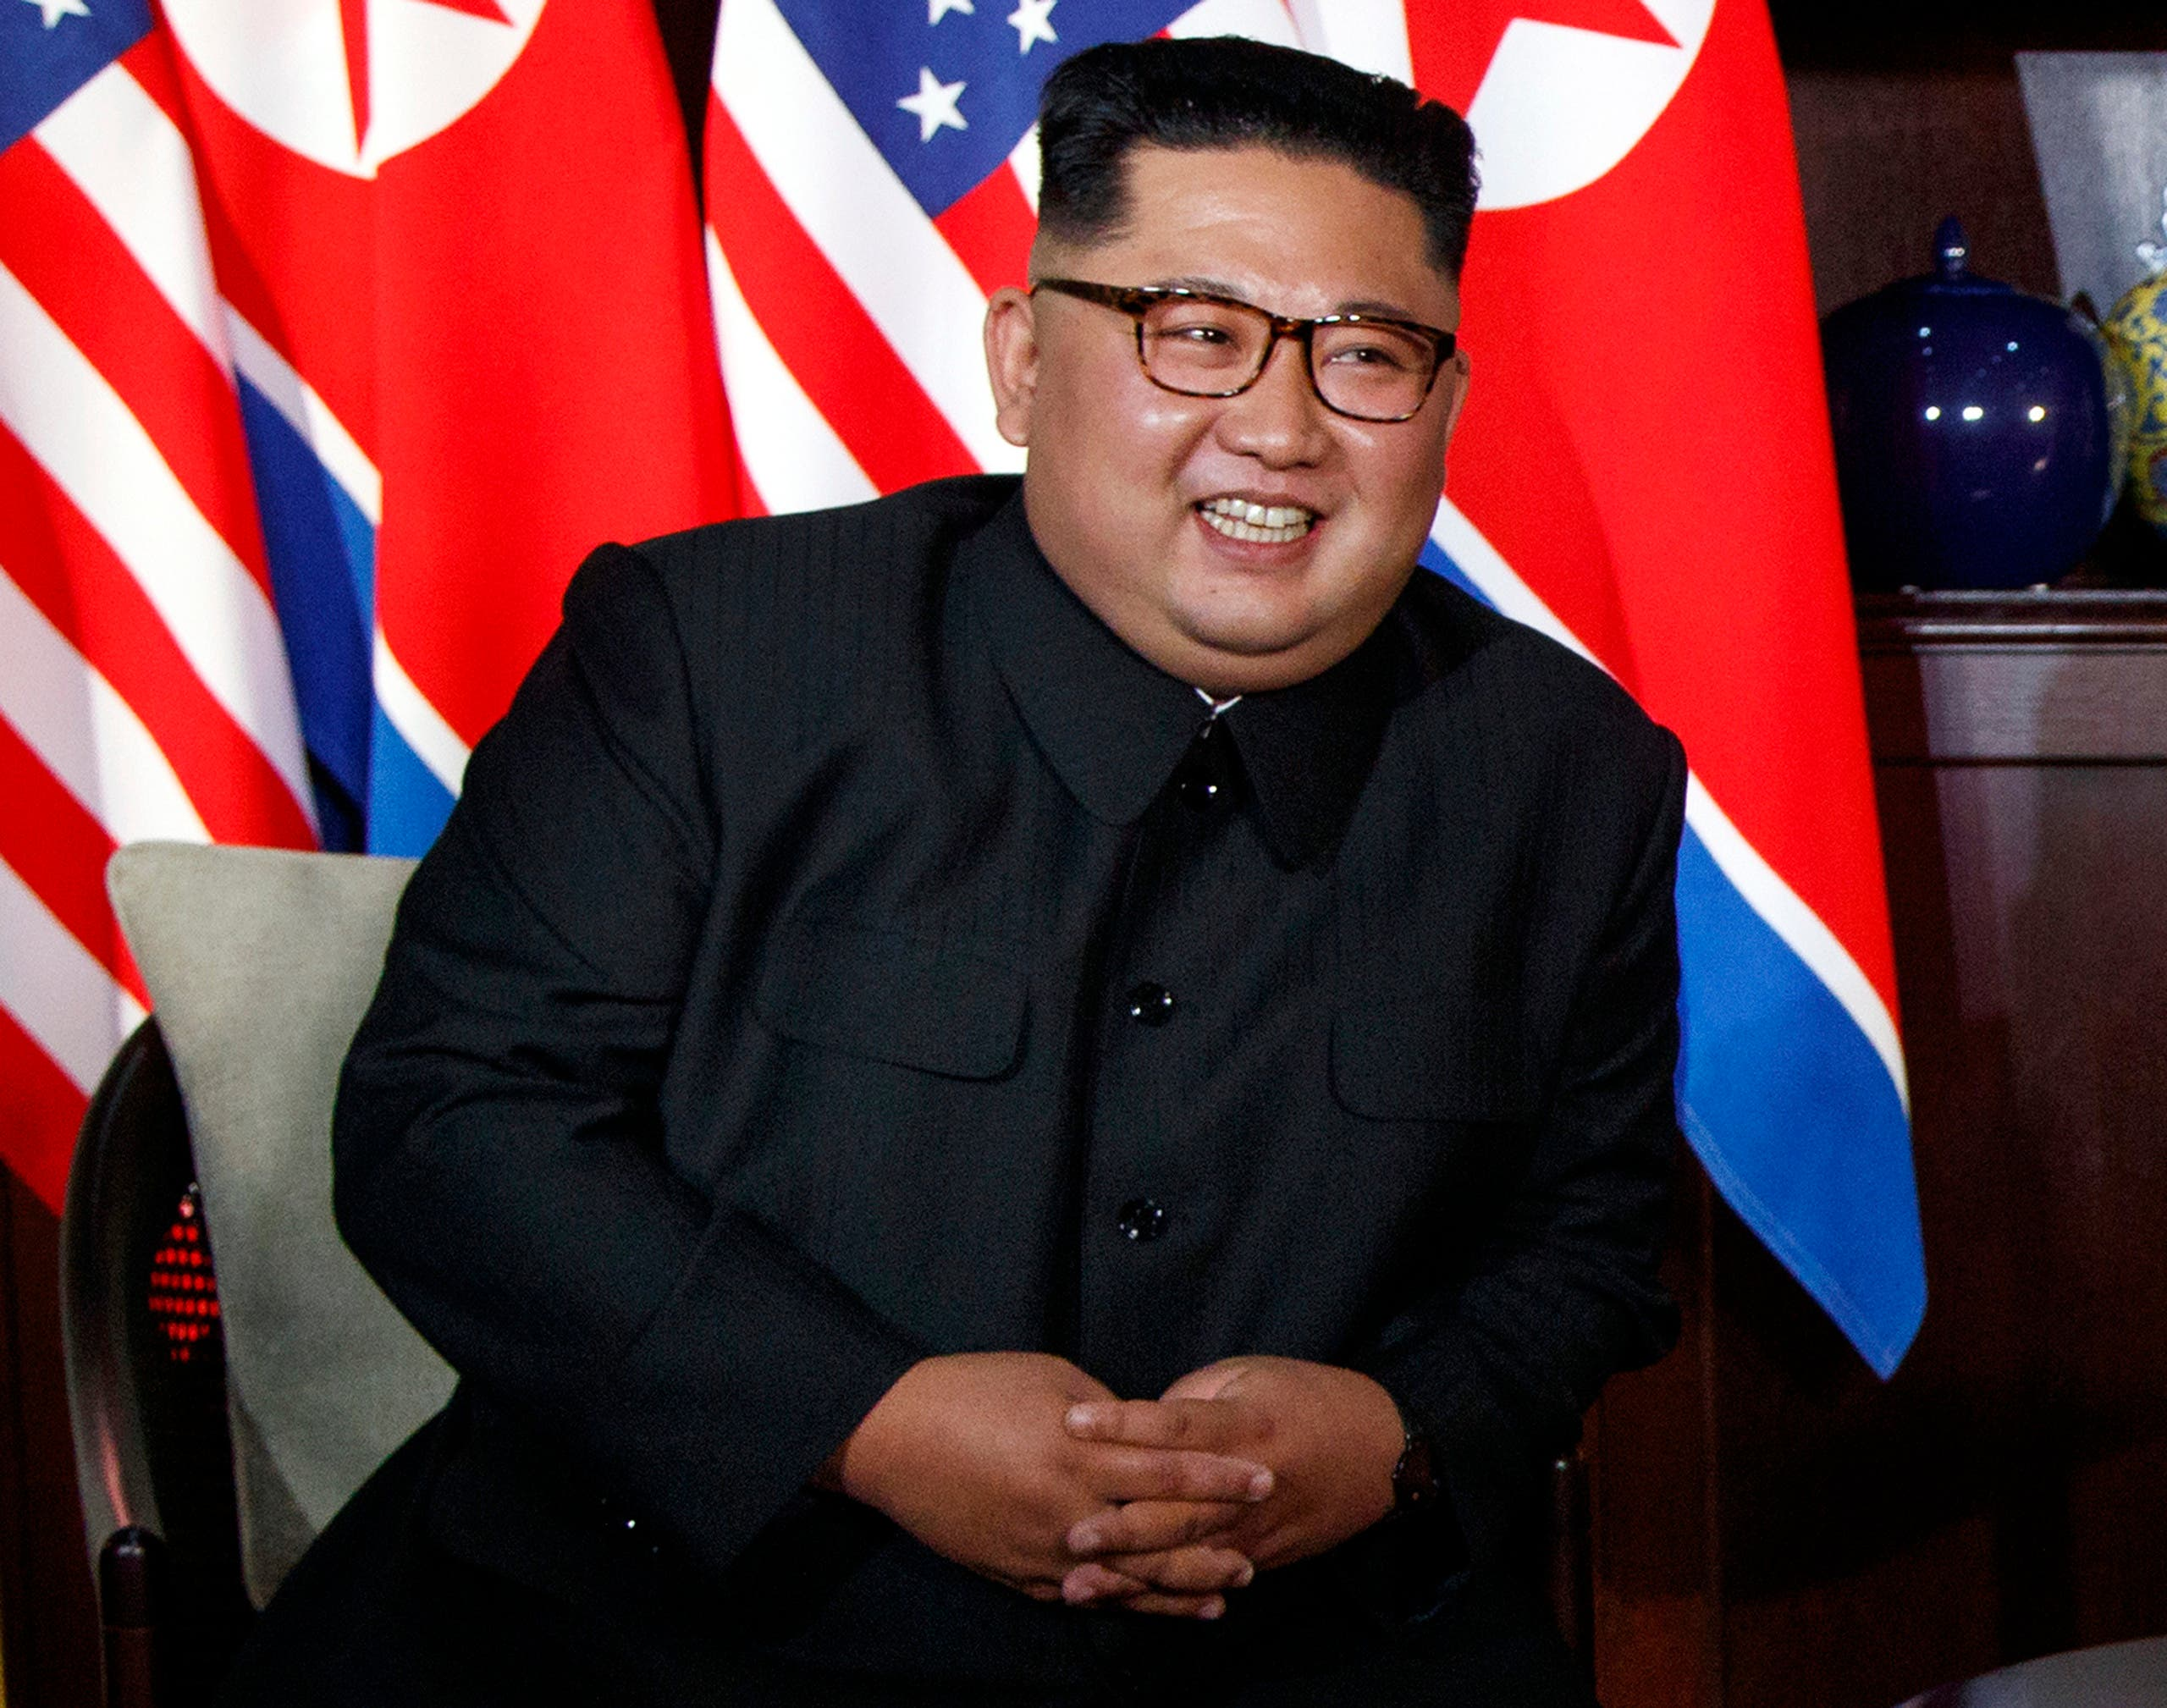 North Korean leader Kim Jong Un smiles as he meets with President Donald Trump on Sentosa Island, Tuesday, June 12, 2018, in Singapore. (AP)